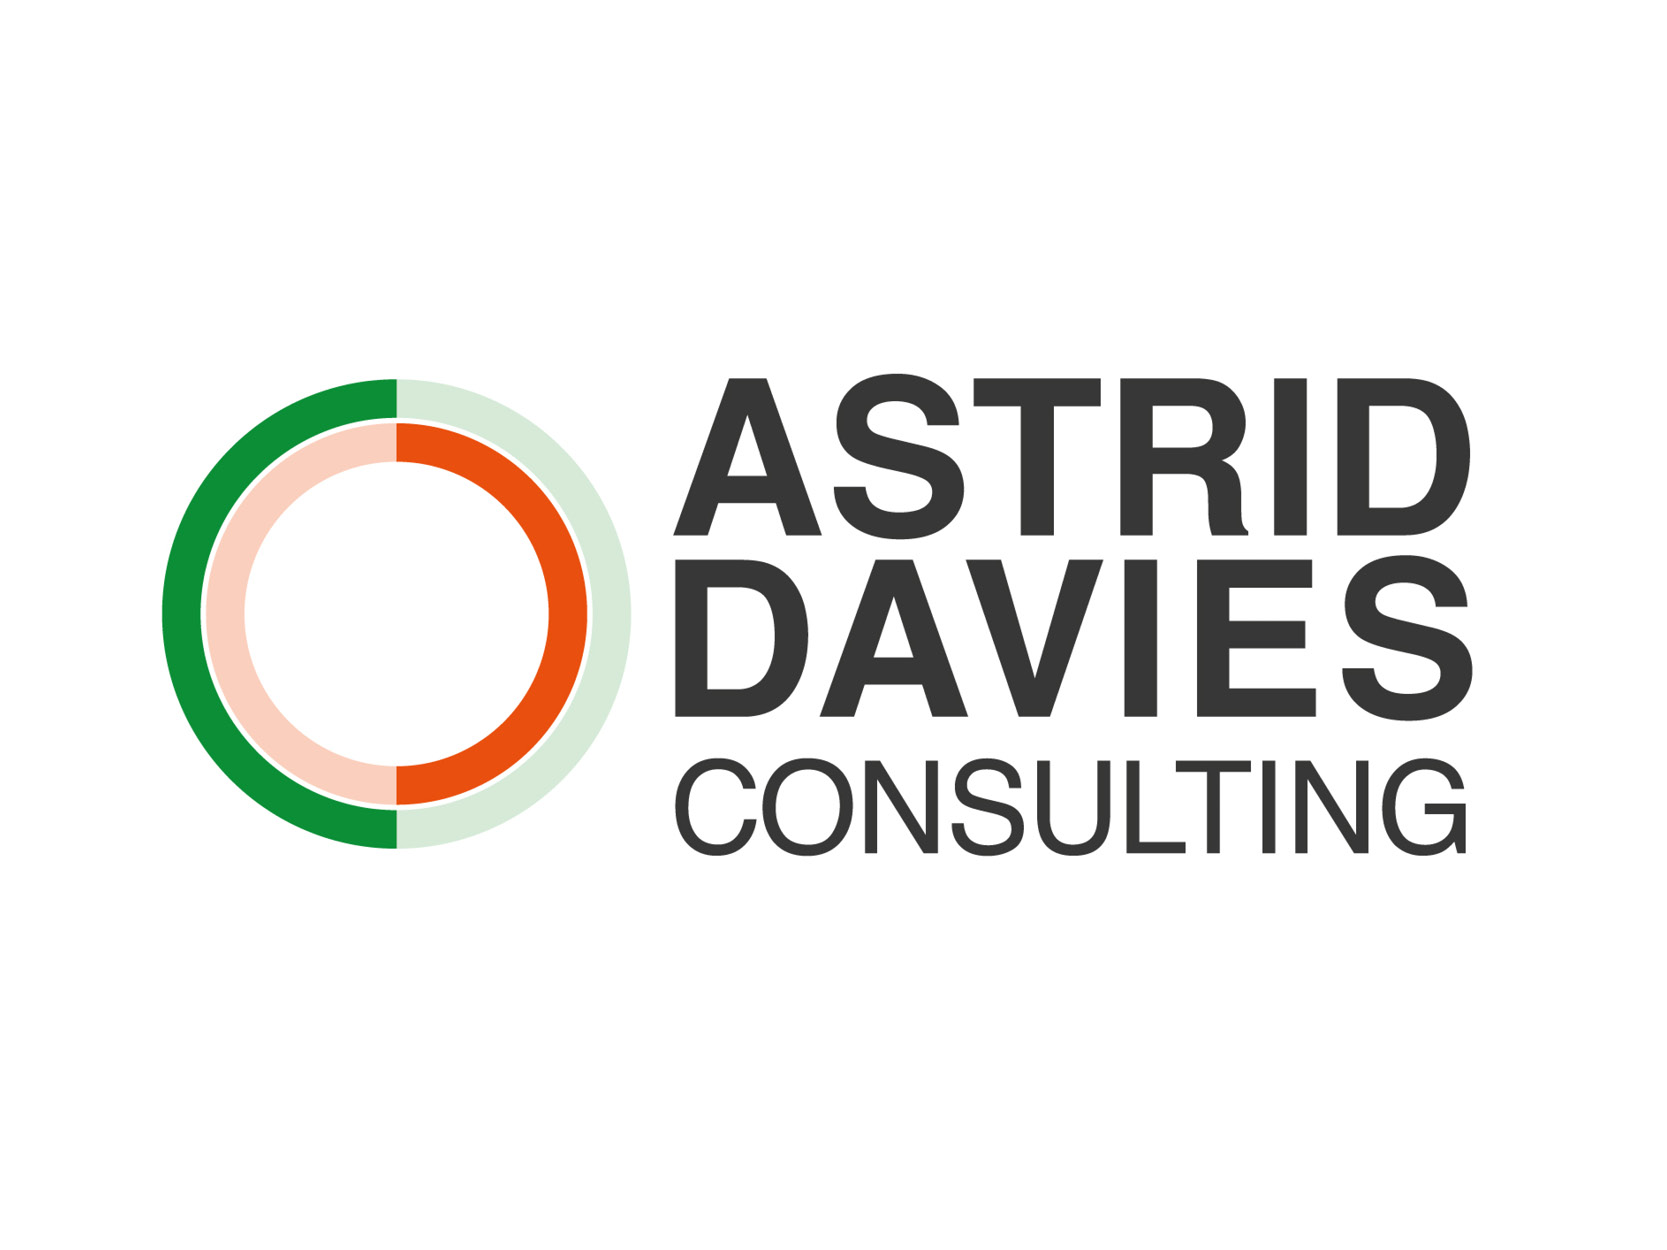 Astrid Davies Consulting